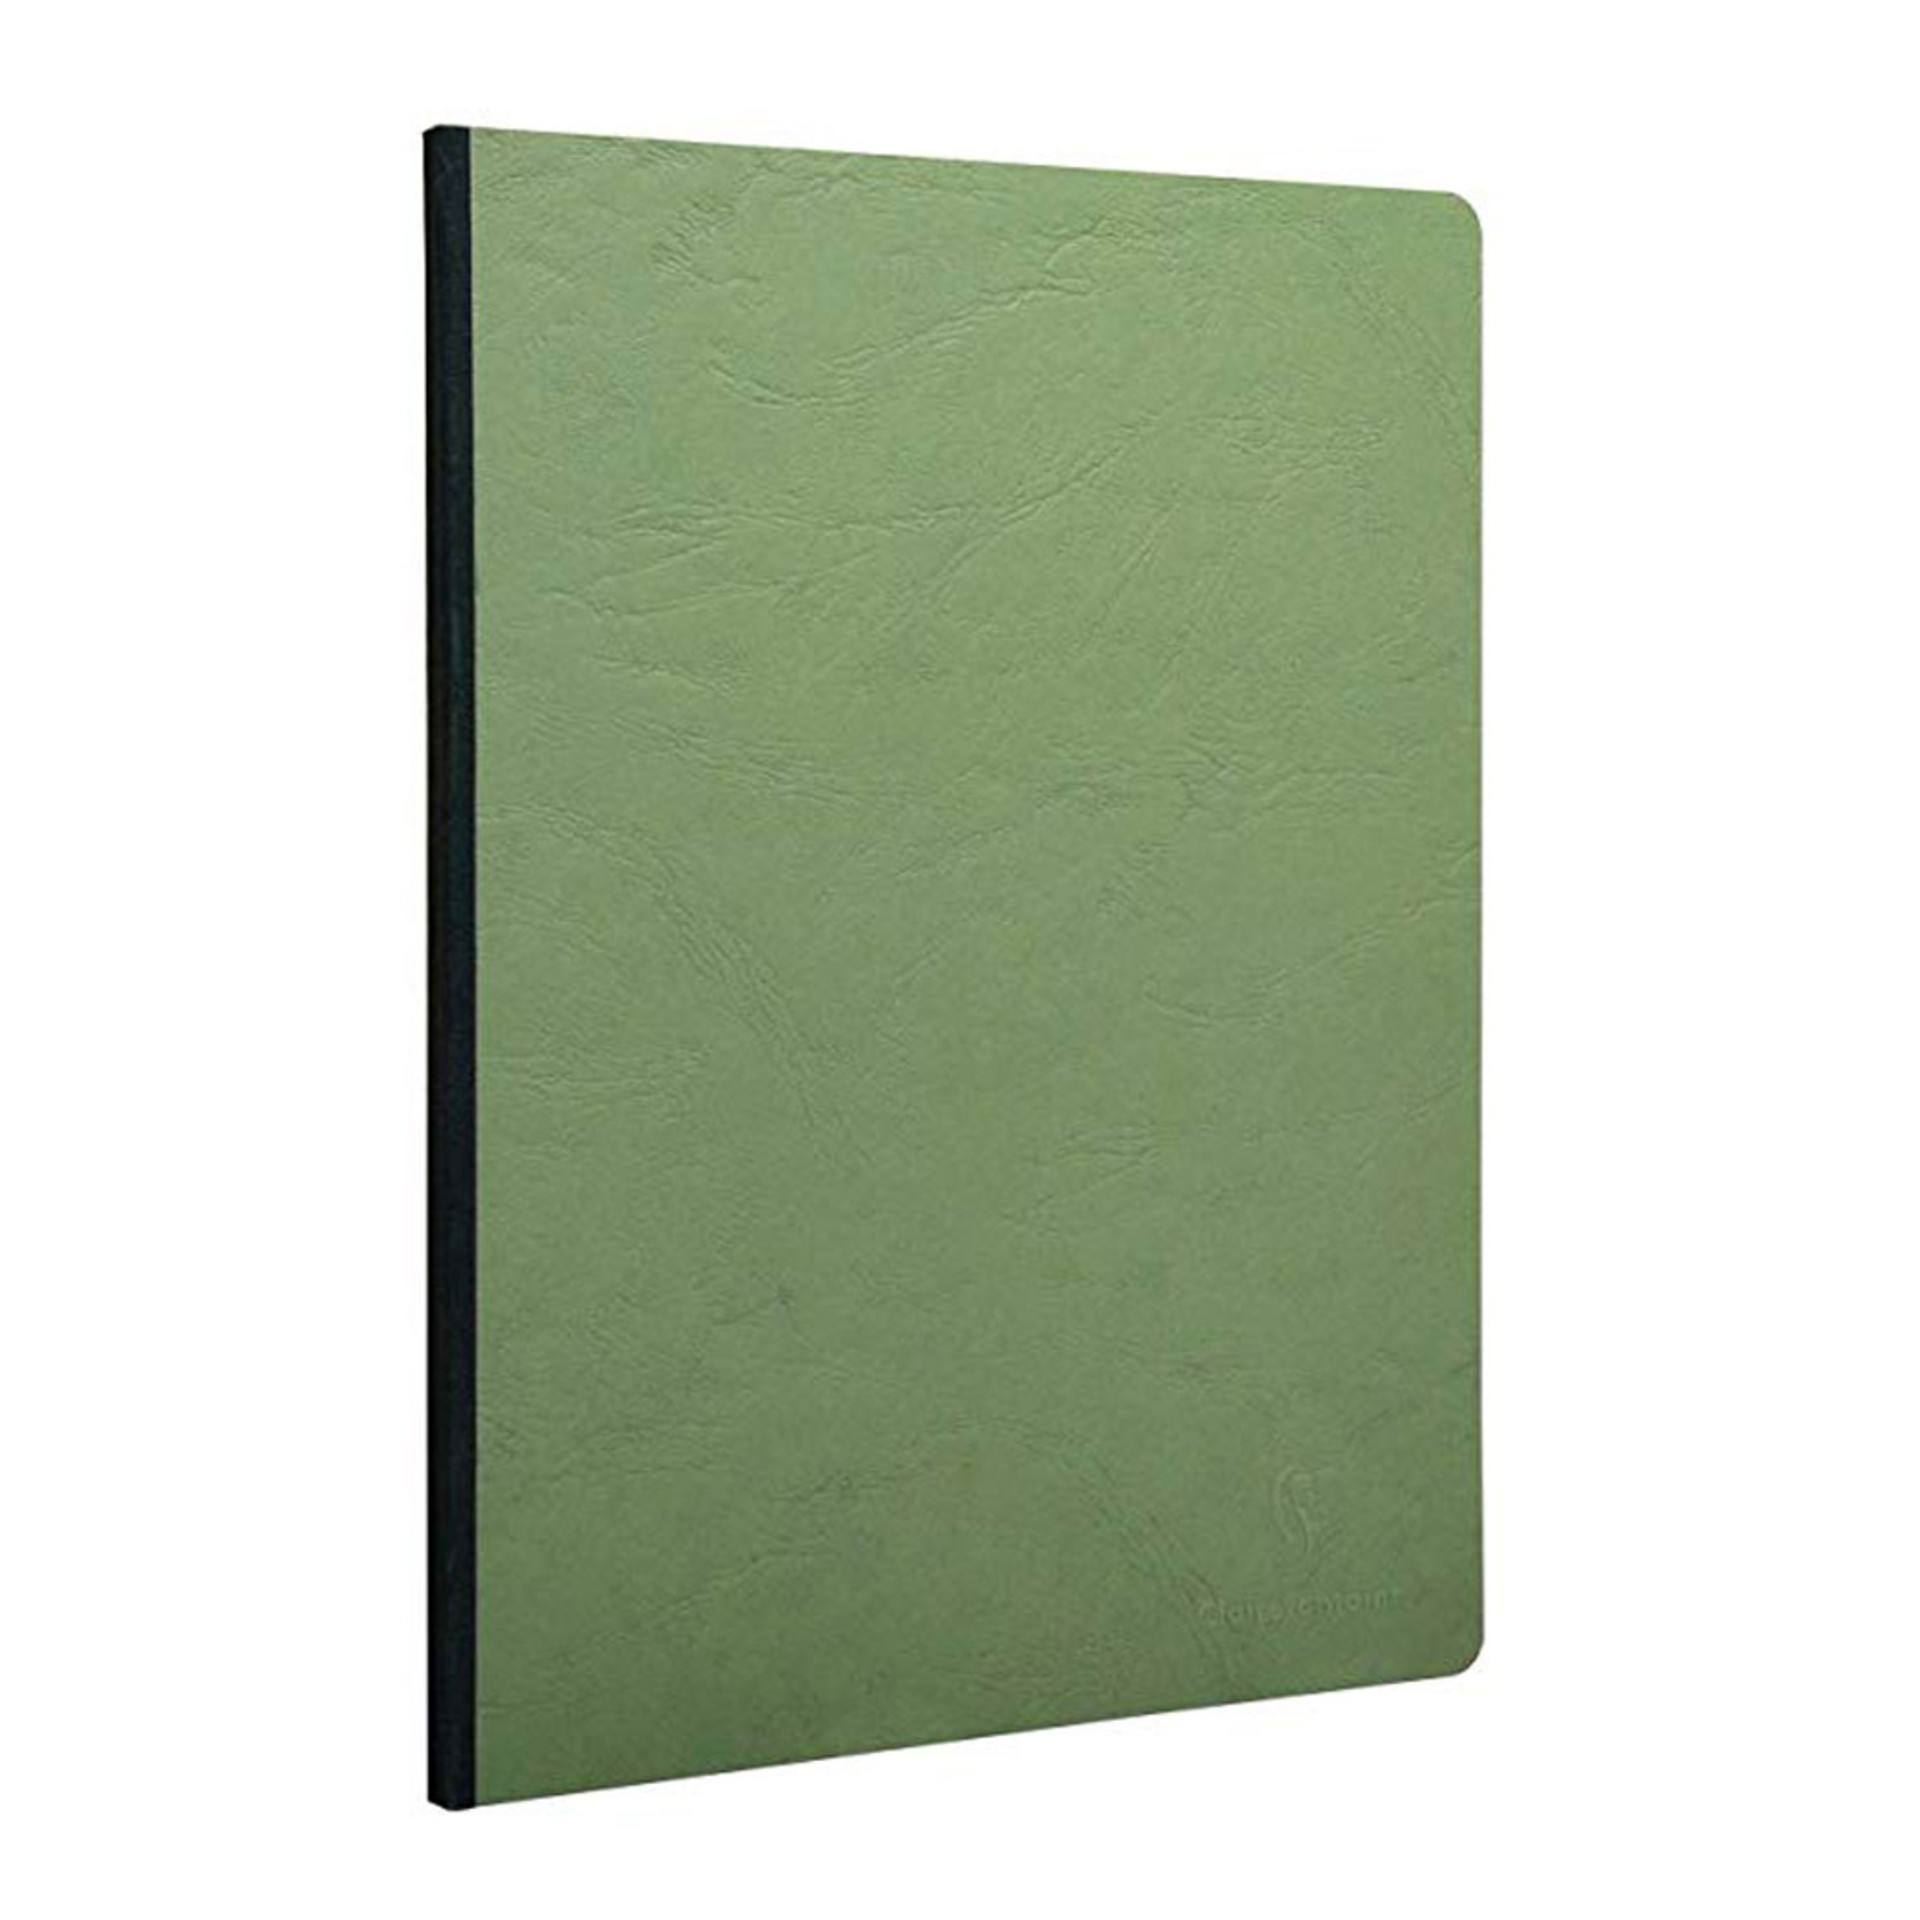 "Clairefontaine Basics 6""x8"" Ruled Green Notebook"